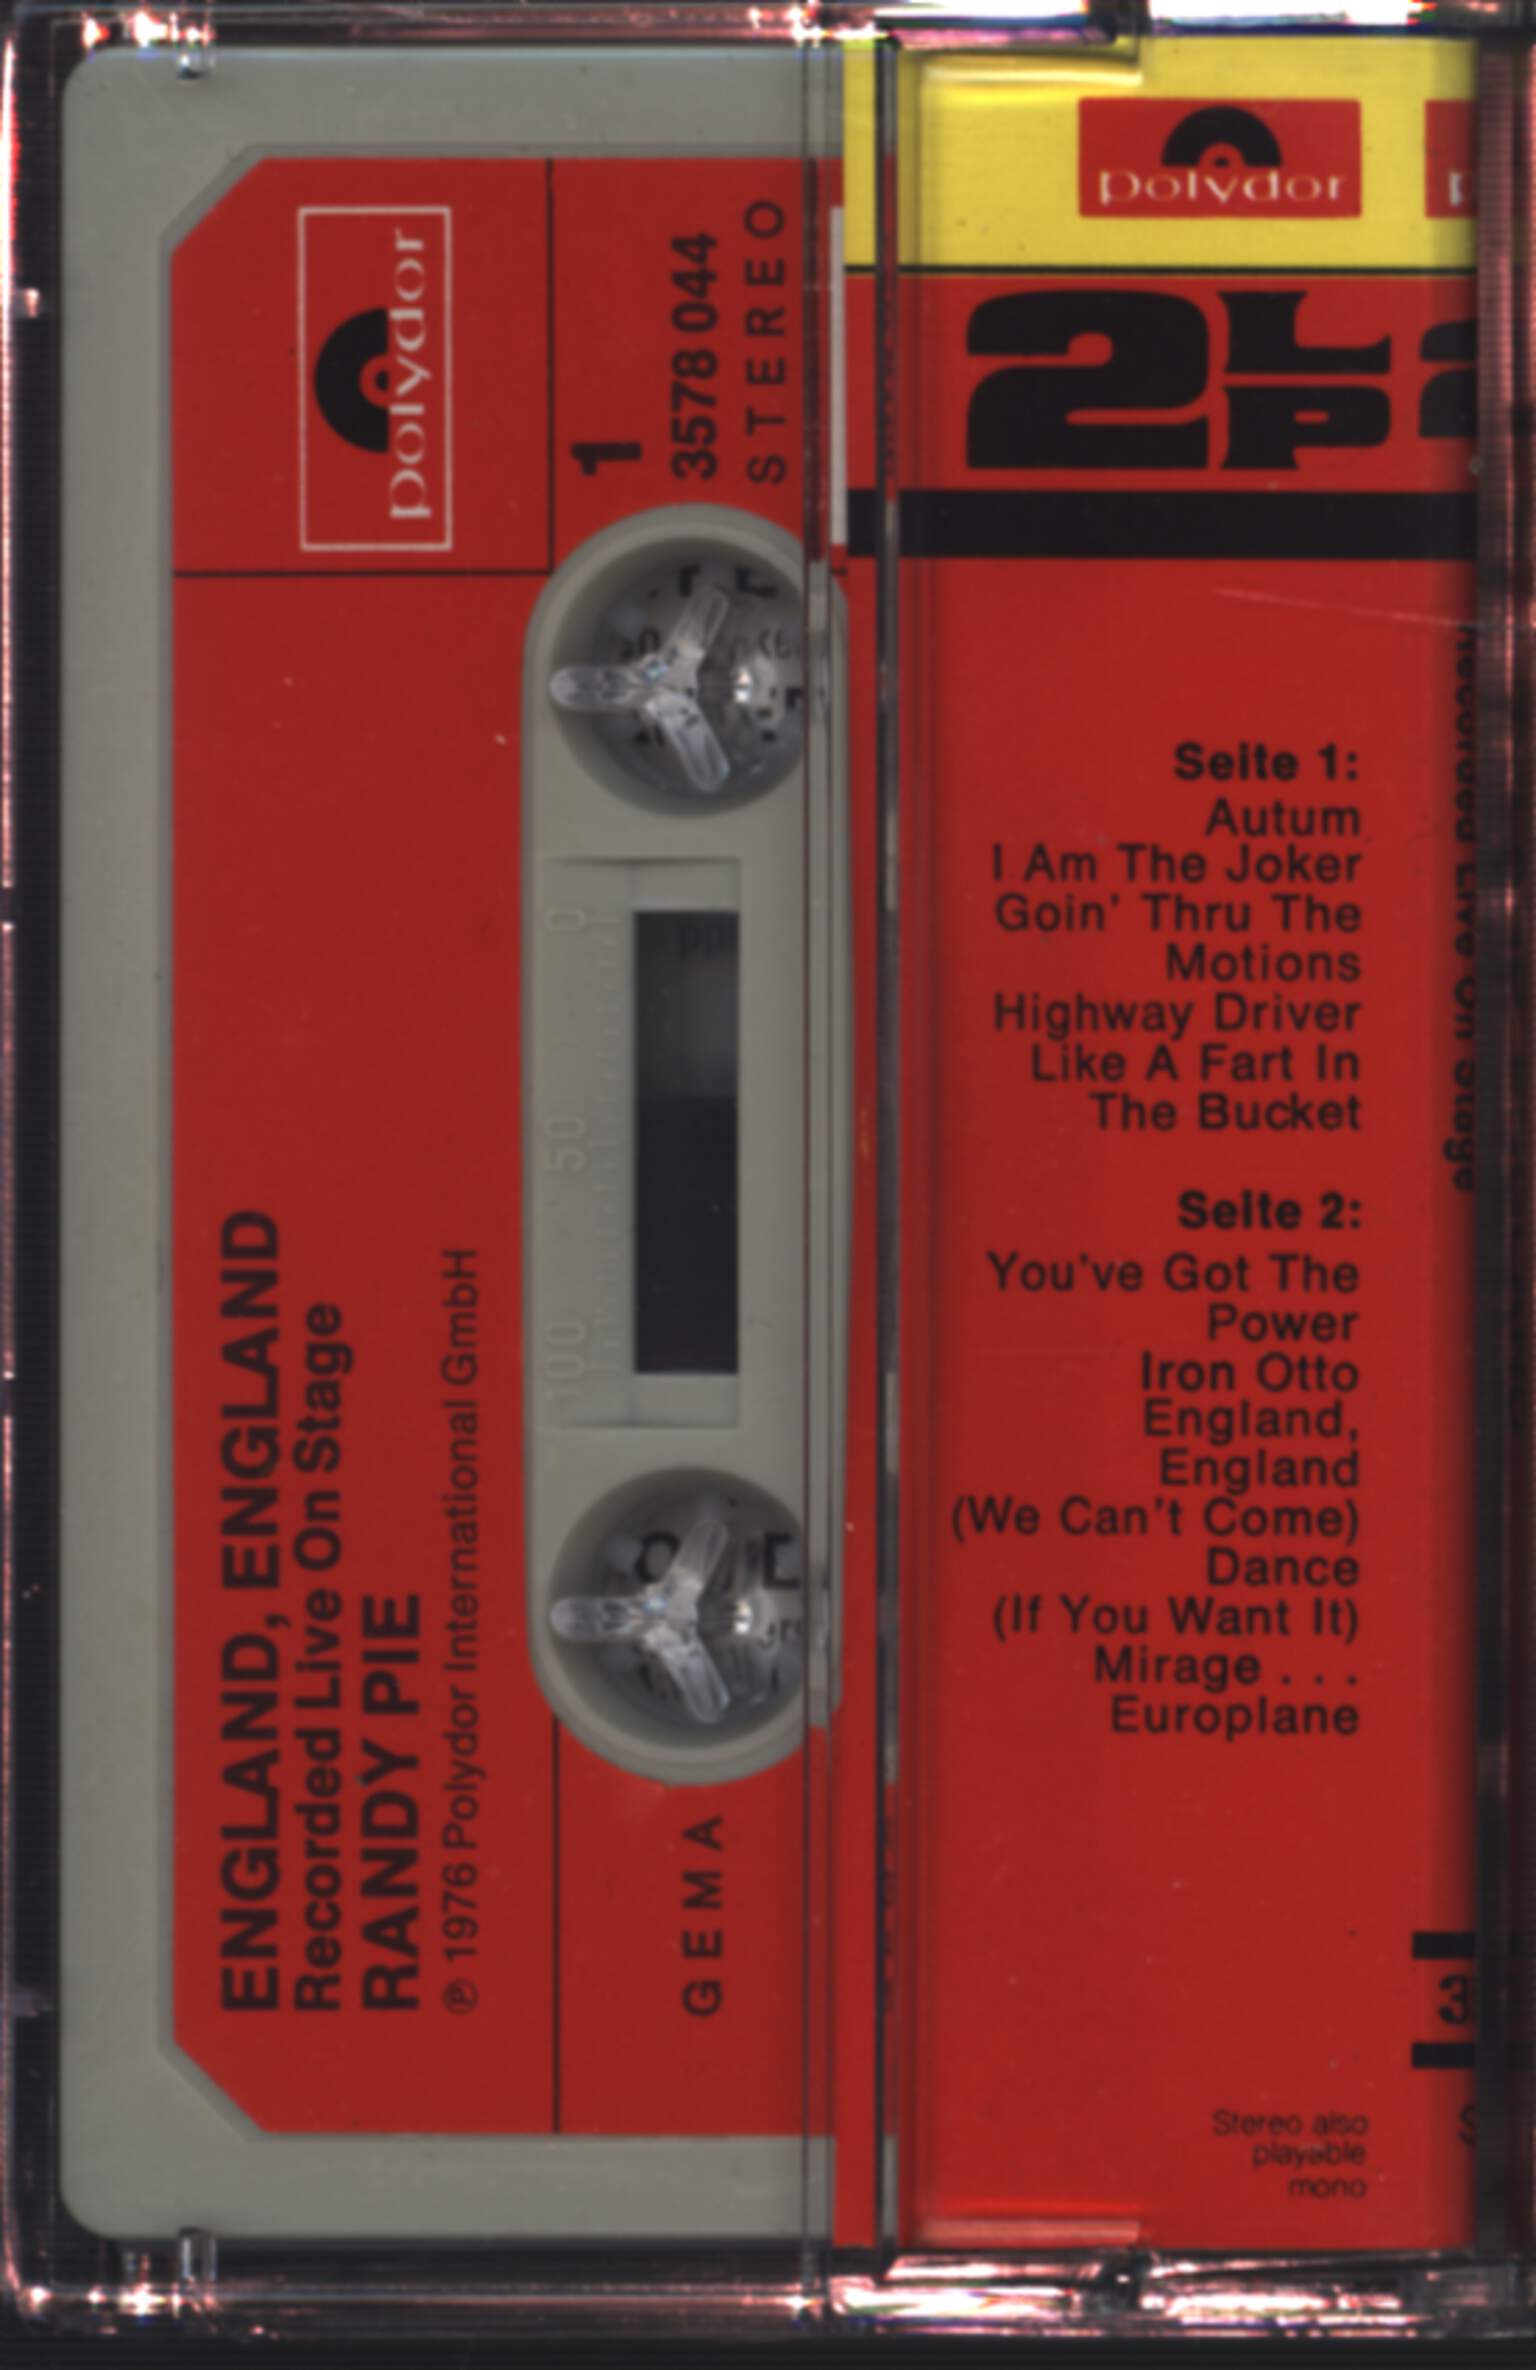 Randy Pie: England, England (Recorded Live On Stage), Compact Cassette